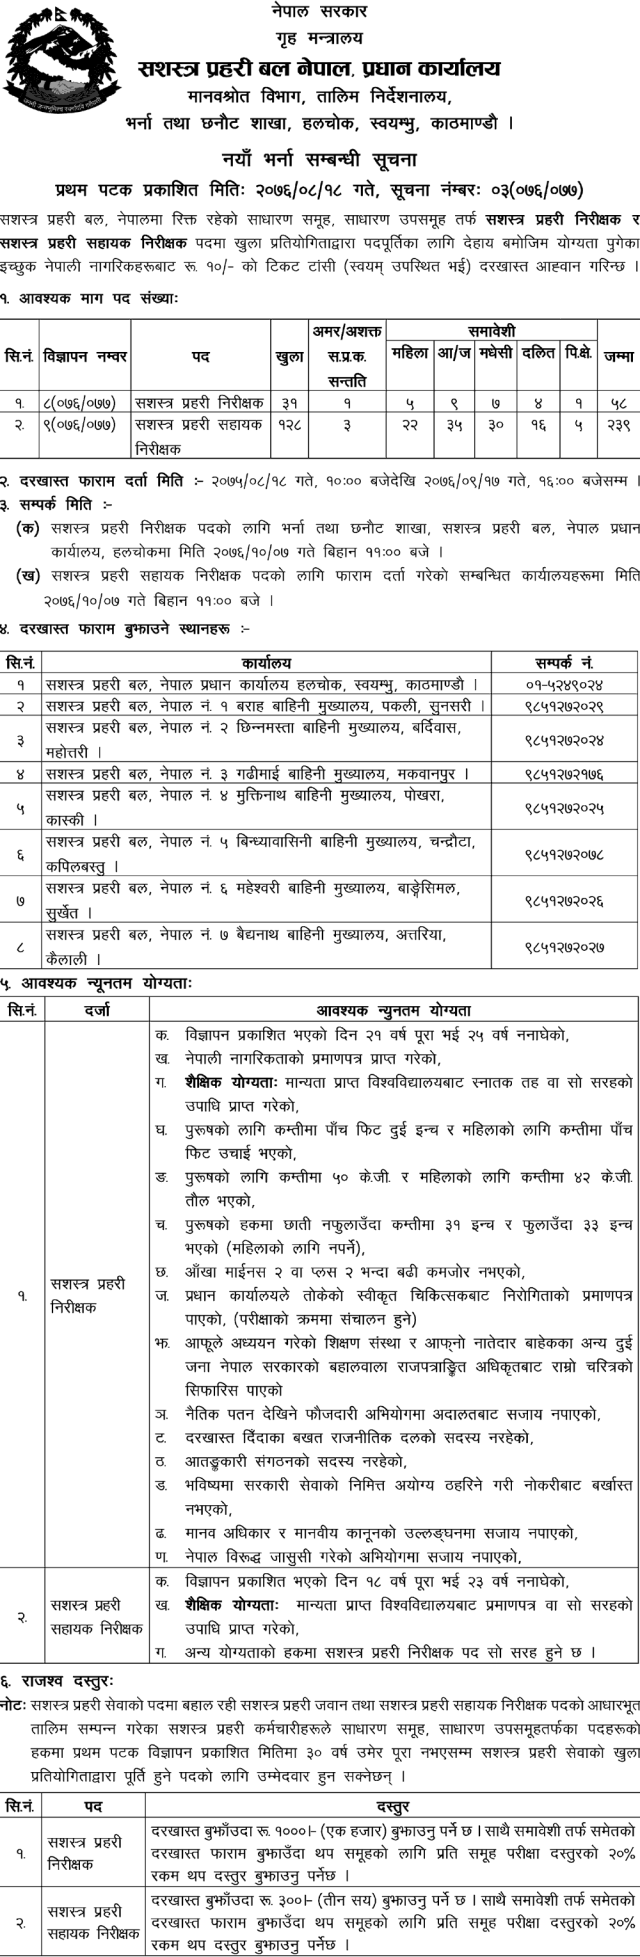 AFP Nepal Published Armed Police Force vacancy notice police inspector and Armed Police Assistant Inspector. The Armed Police Force (AFP) of Nepal is a paramilitary land force tasked with counter-insurgency operations in Nepal. recruitment by open competition in the posts of the Armed Police Force job vacancy. The following qualified interested Nepalese citizens are requested to apply. Armed Police Inspector - 58 Armed Police Assistant Inspector - 239 Application Form Registration Date: - 2076/08/18 to 2076/09/17, (10 and to 4 pm) View Armed Police Force vacancy below notice and check the APF official website Armed Police Force, Nepal